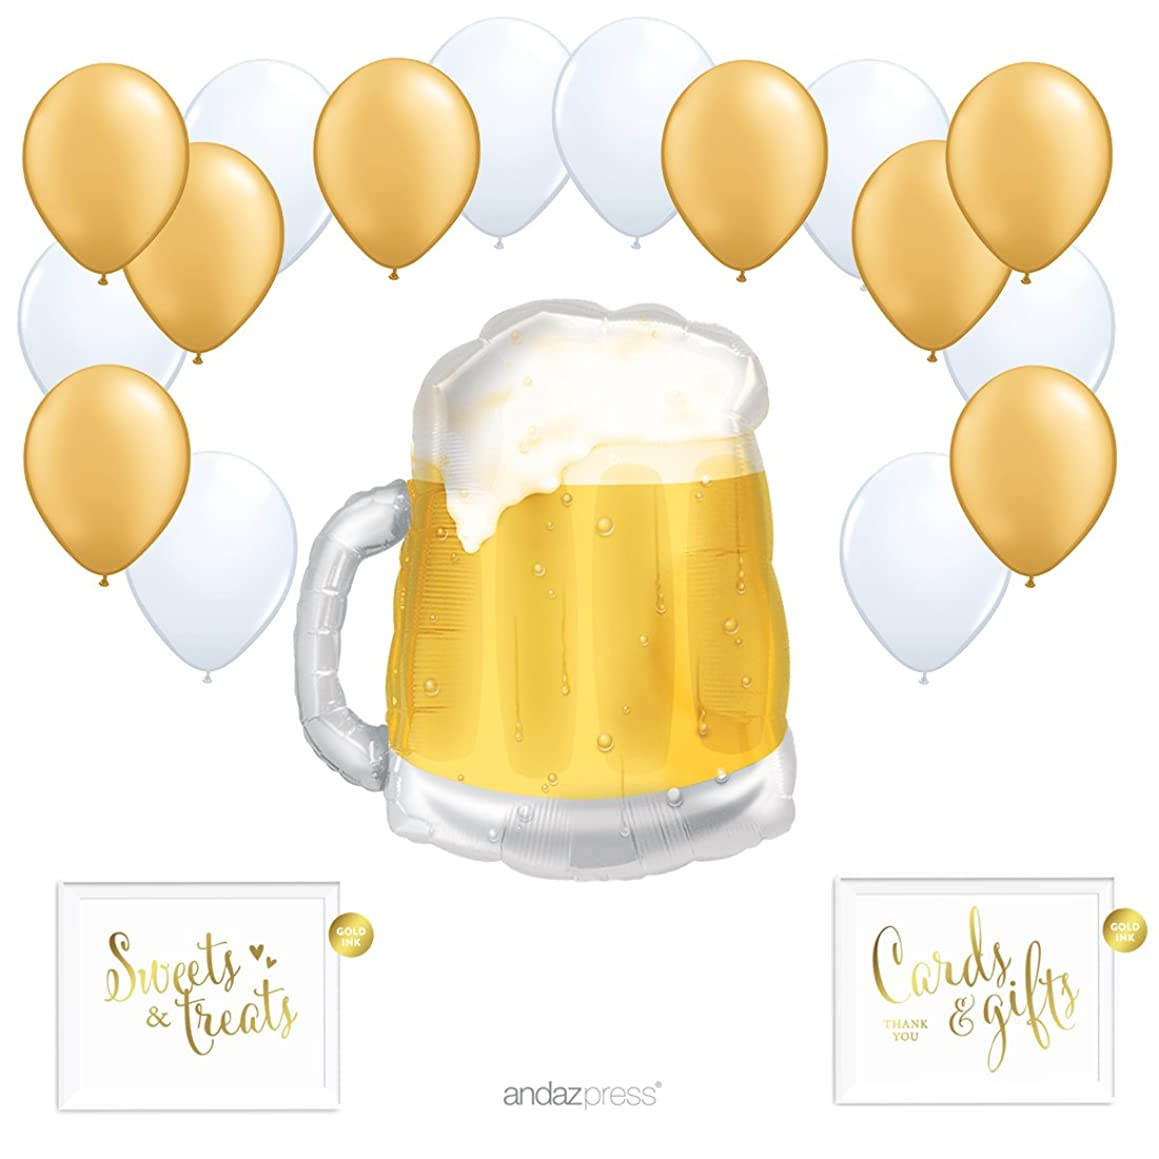 Andaz Press Balloon Party Kit with Gold Ink Signs, Frosty Beer Mug with Gold and White Latex Balloons, 19-Piece Kit